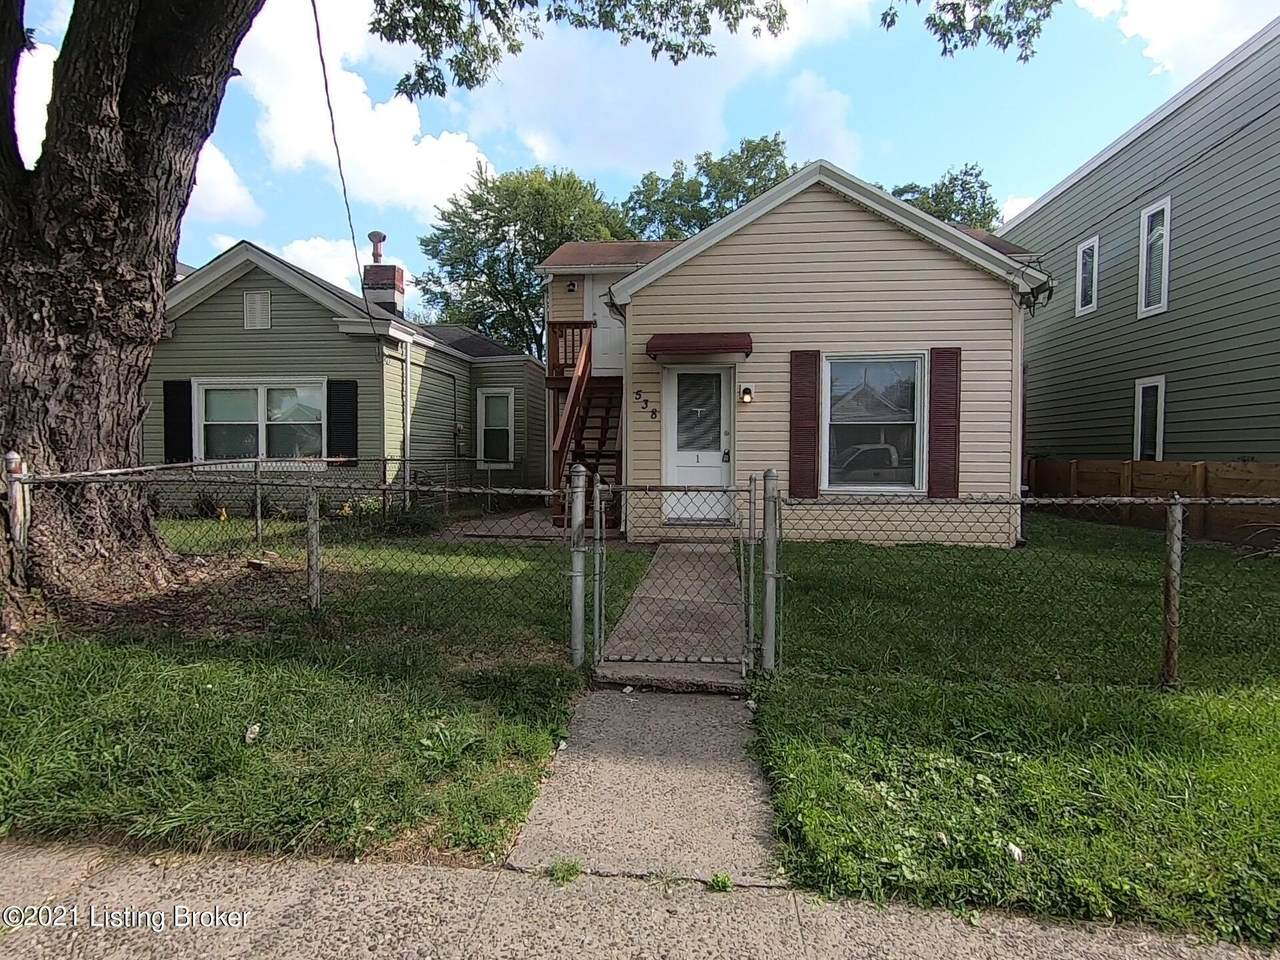 538 Lilly Ave - Photo 1